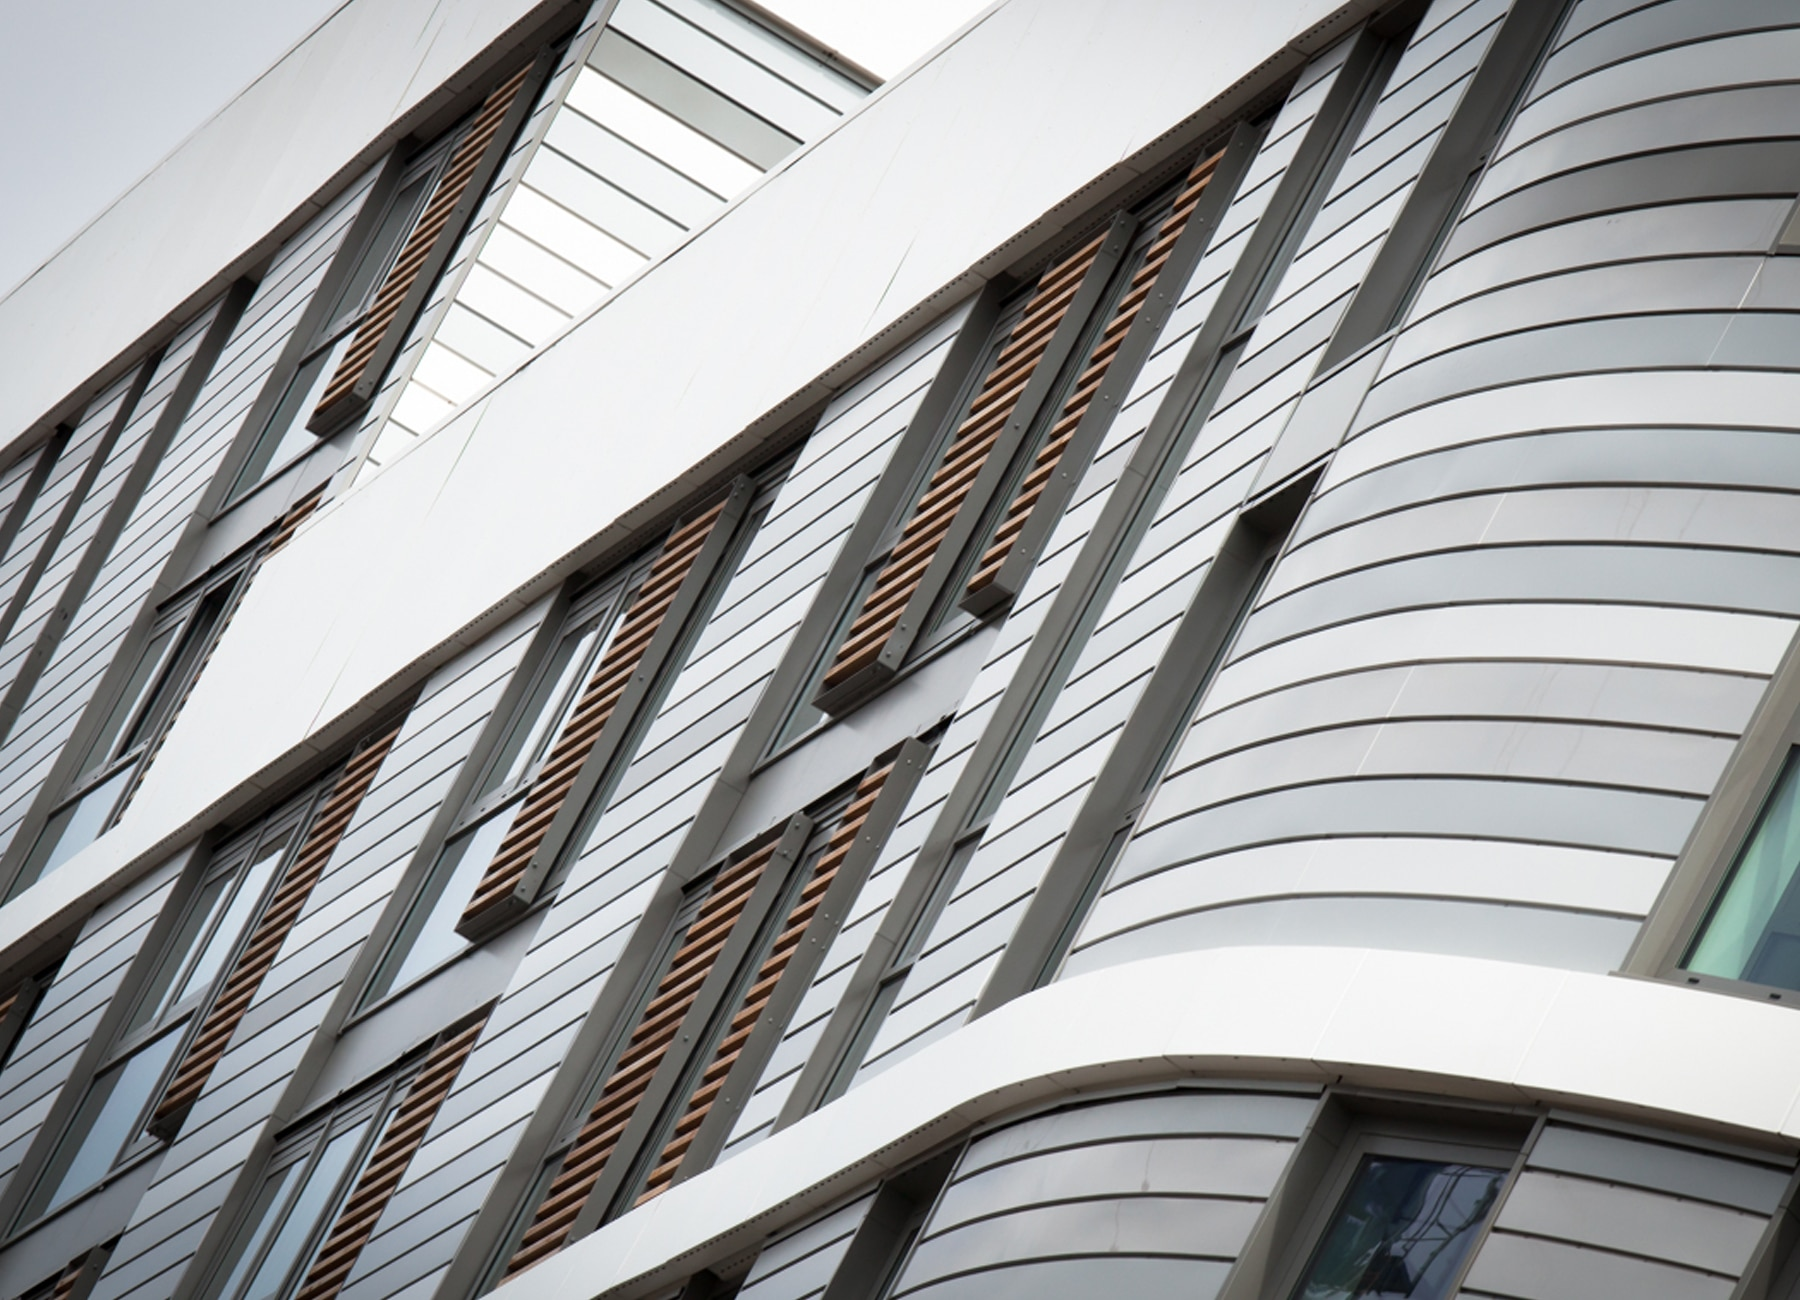 GWQ Optima IPC Rainscreen Cladding with PPC Finish